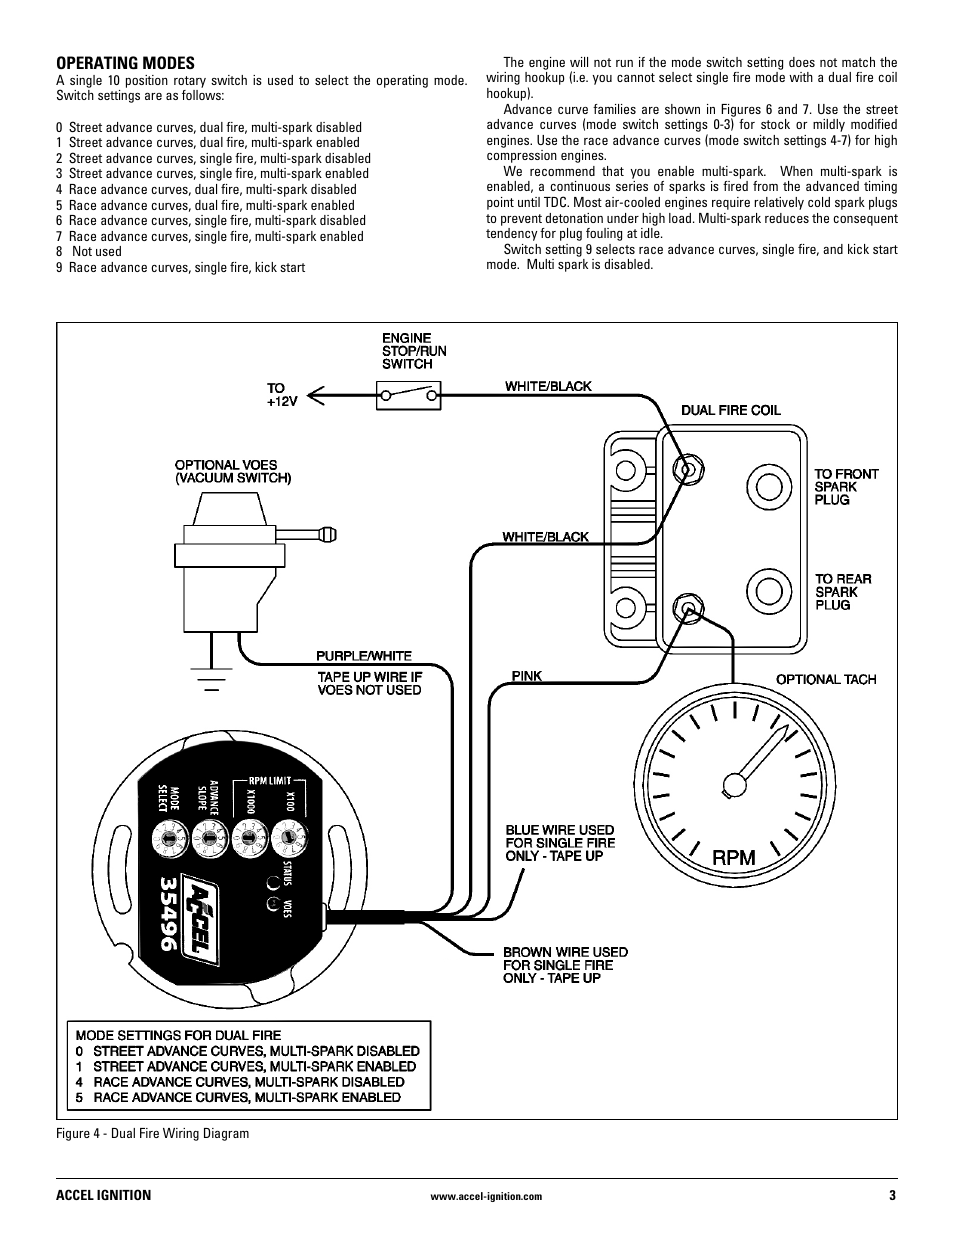 accel ignition wiring diagram golf cart ez go mallory 35496 user manual | page 3 / 8